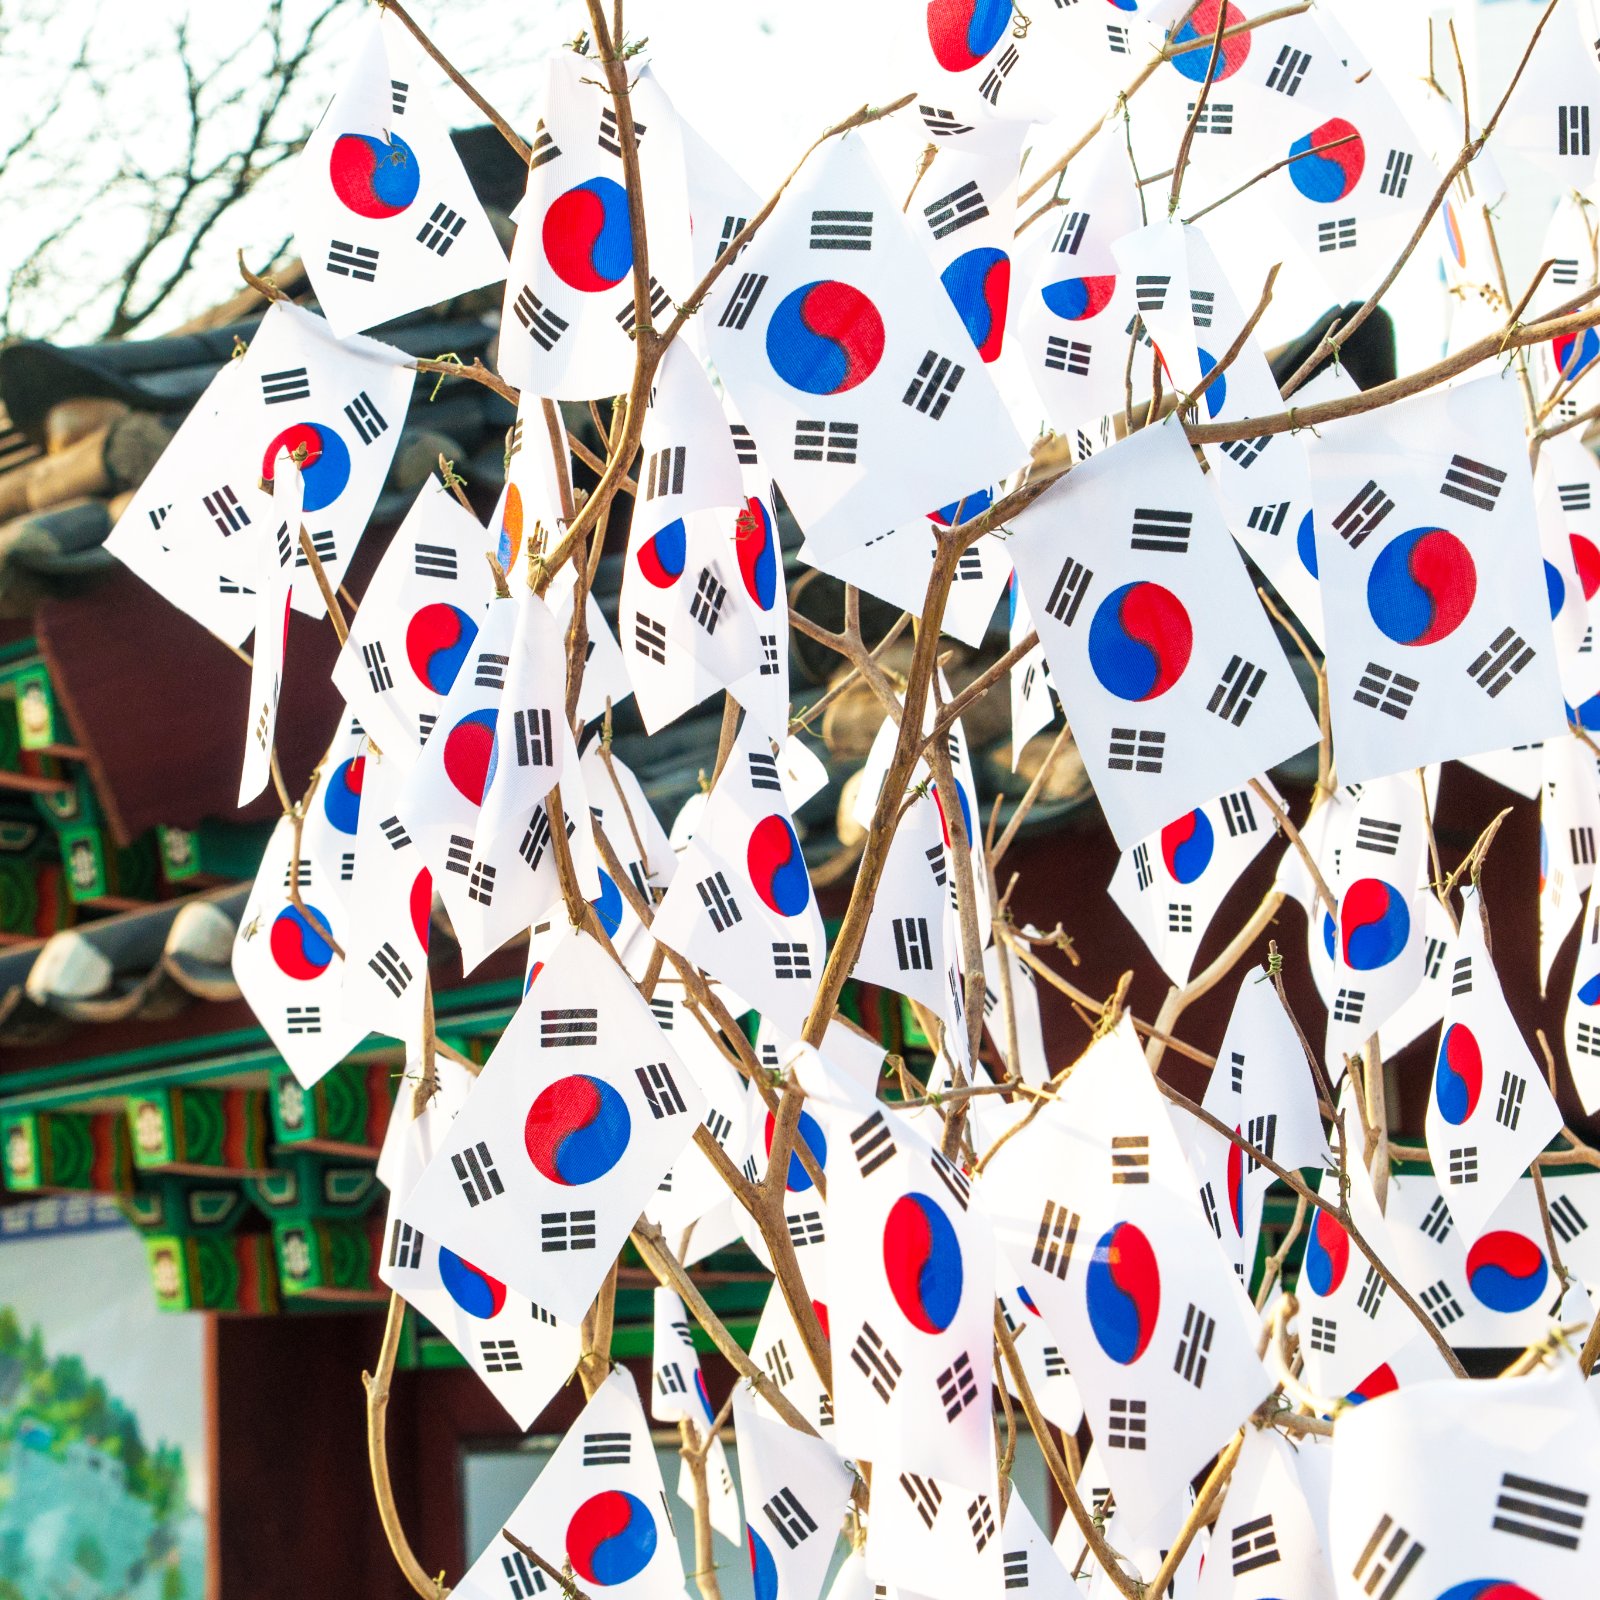 South Korea Updates ICO Policy After 3-Month Investigation